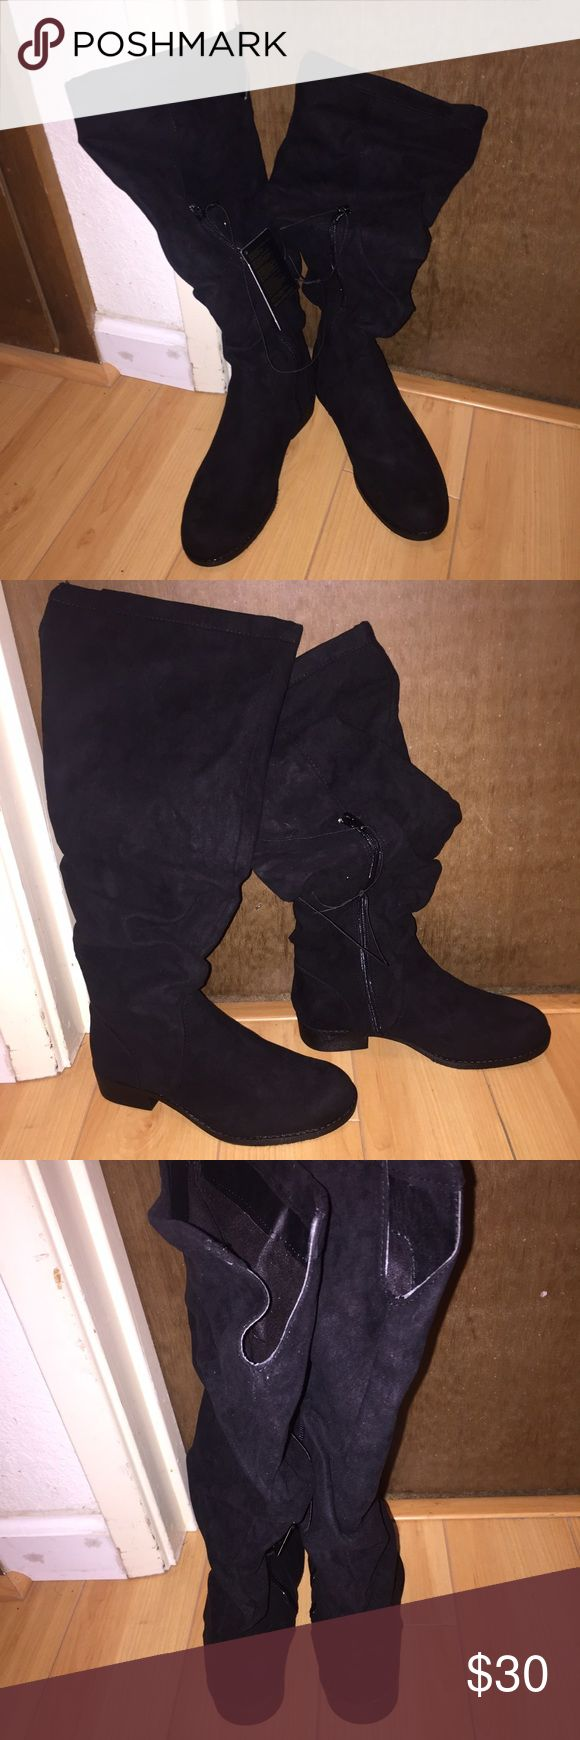 1000 ideas about suede knee high boots on